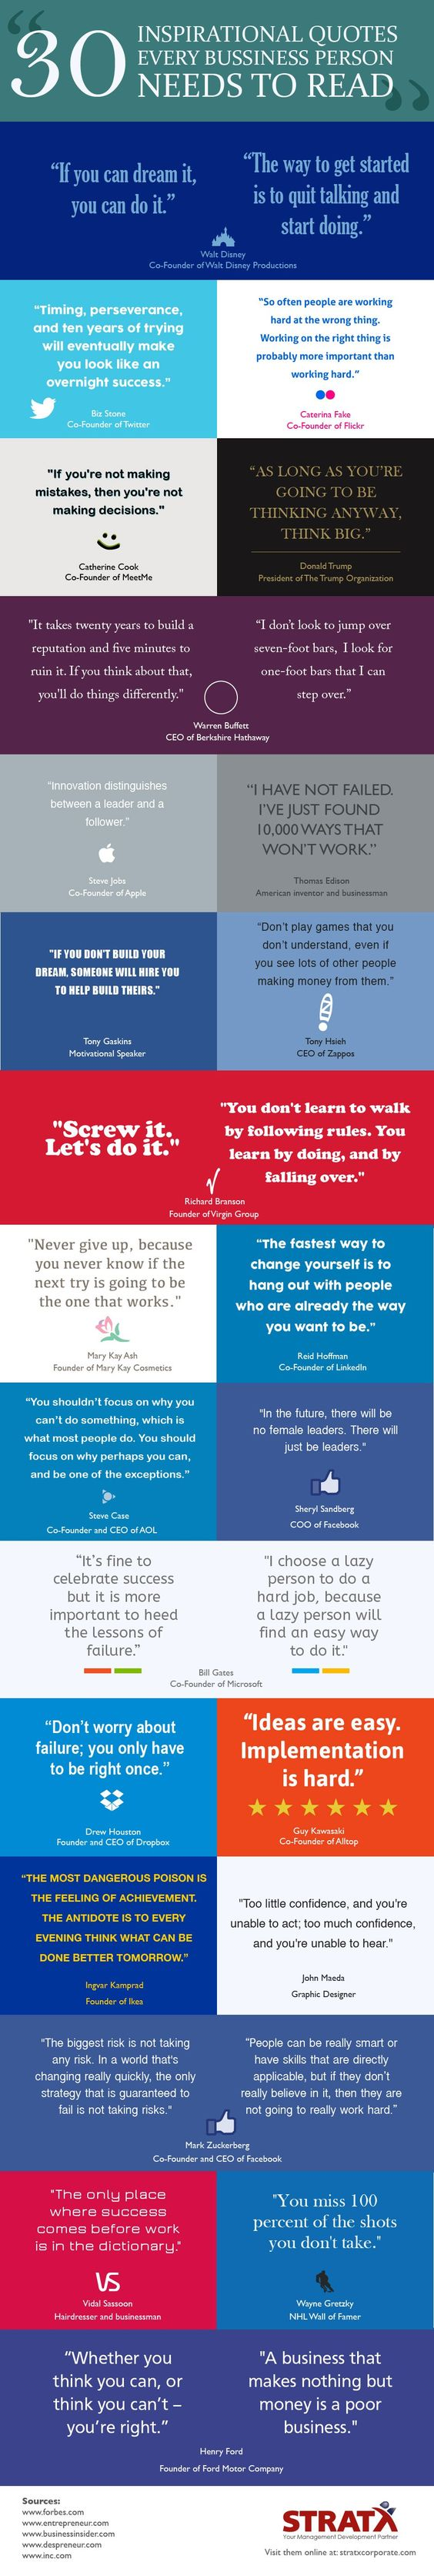 inspirational-and-motivational-quotes-about-success-for-business-people - actions, failures - failures - learn - learning - mistakes - mistake - successful people - goals - dreams - achievement, plan of action,